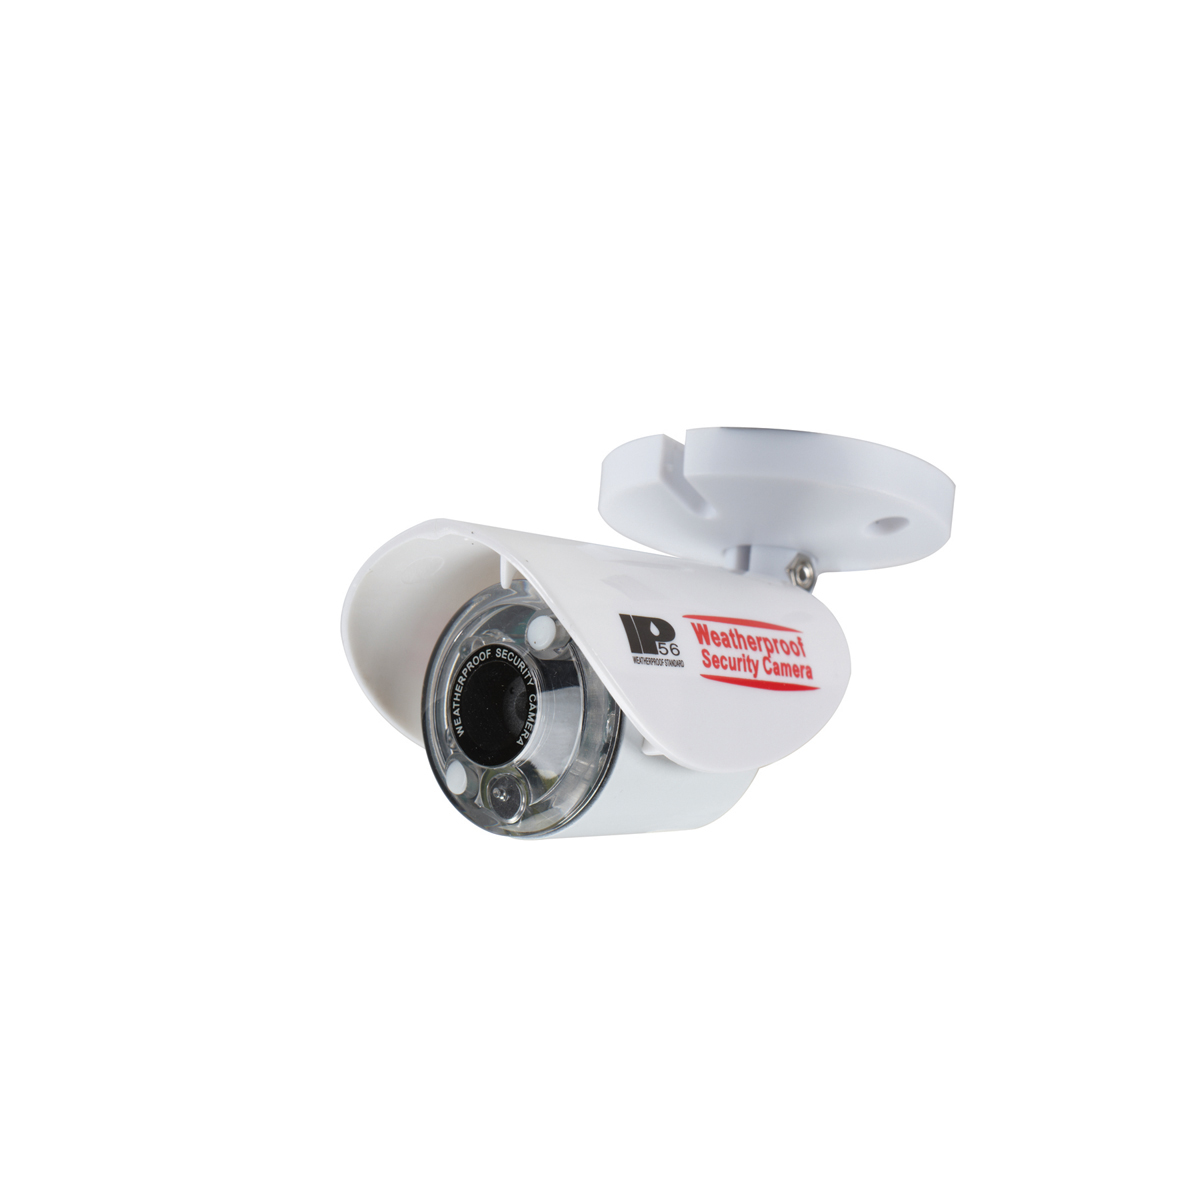 security camera wiring diagram architecture software block weatherproof with night vision